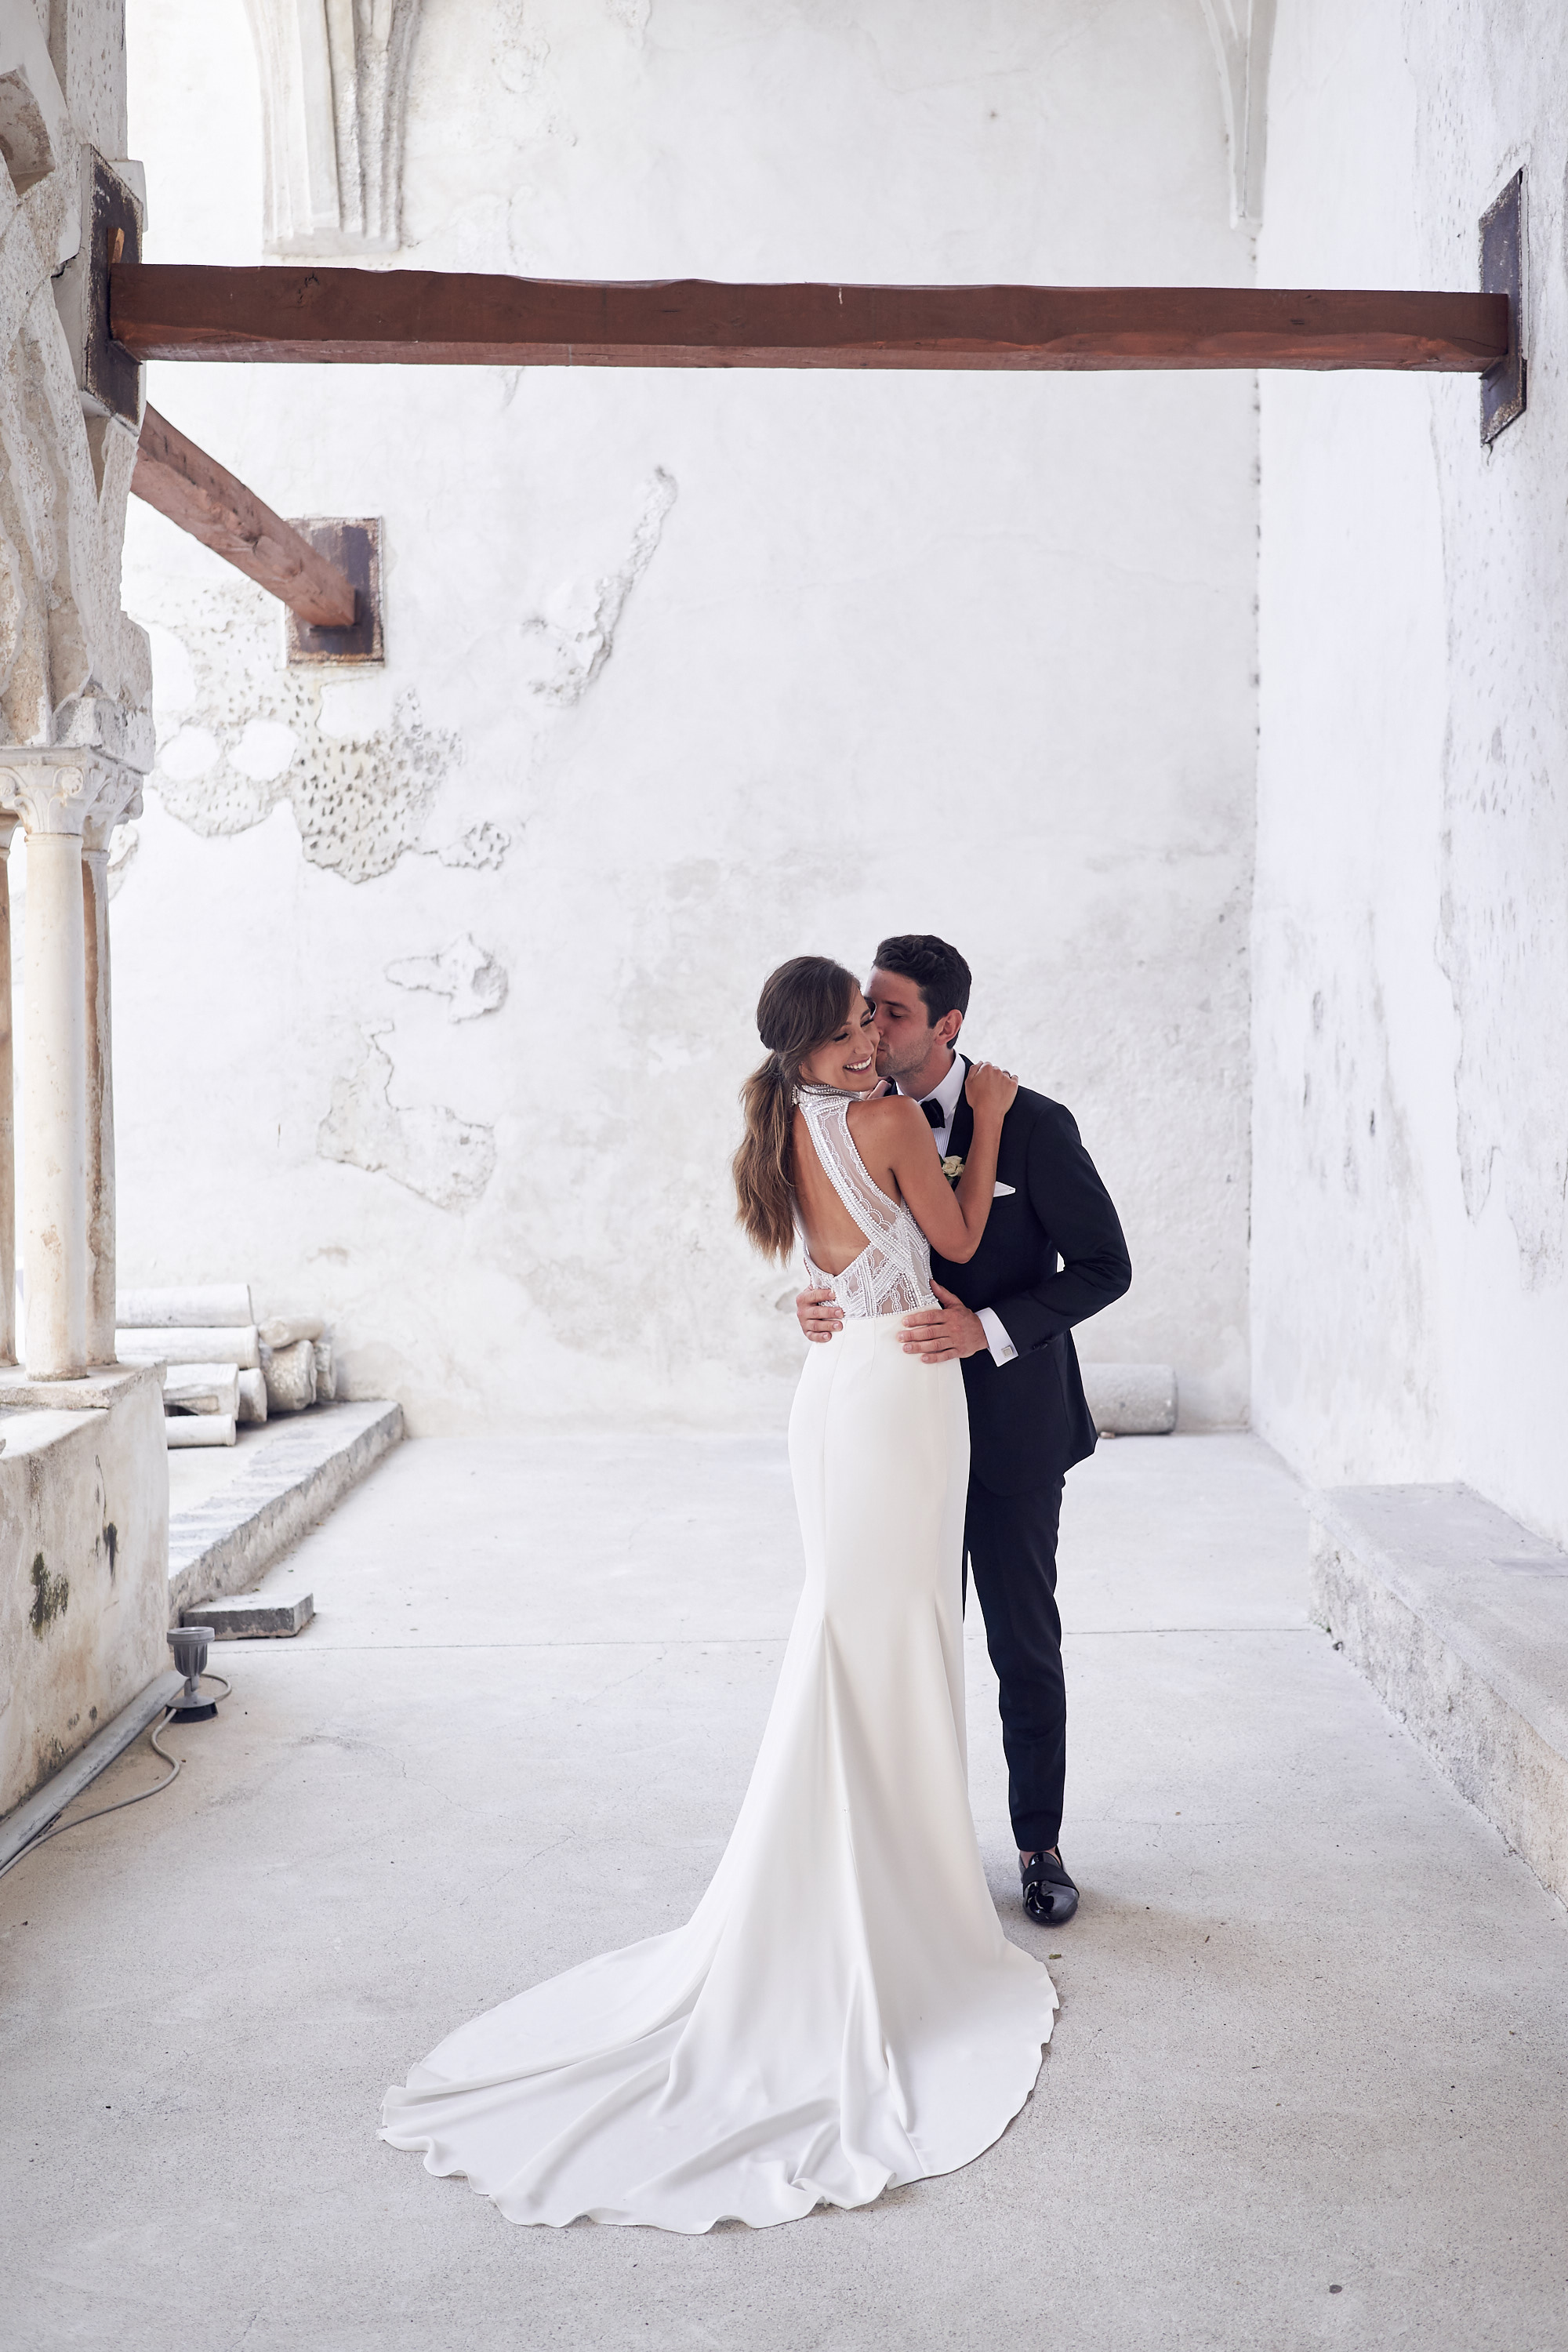 The sweetest first see. Amalfi Coast Wedding by Lost In Love Photography